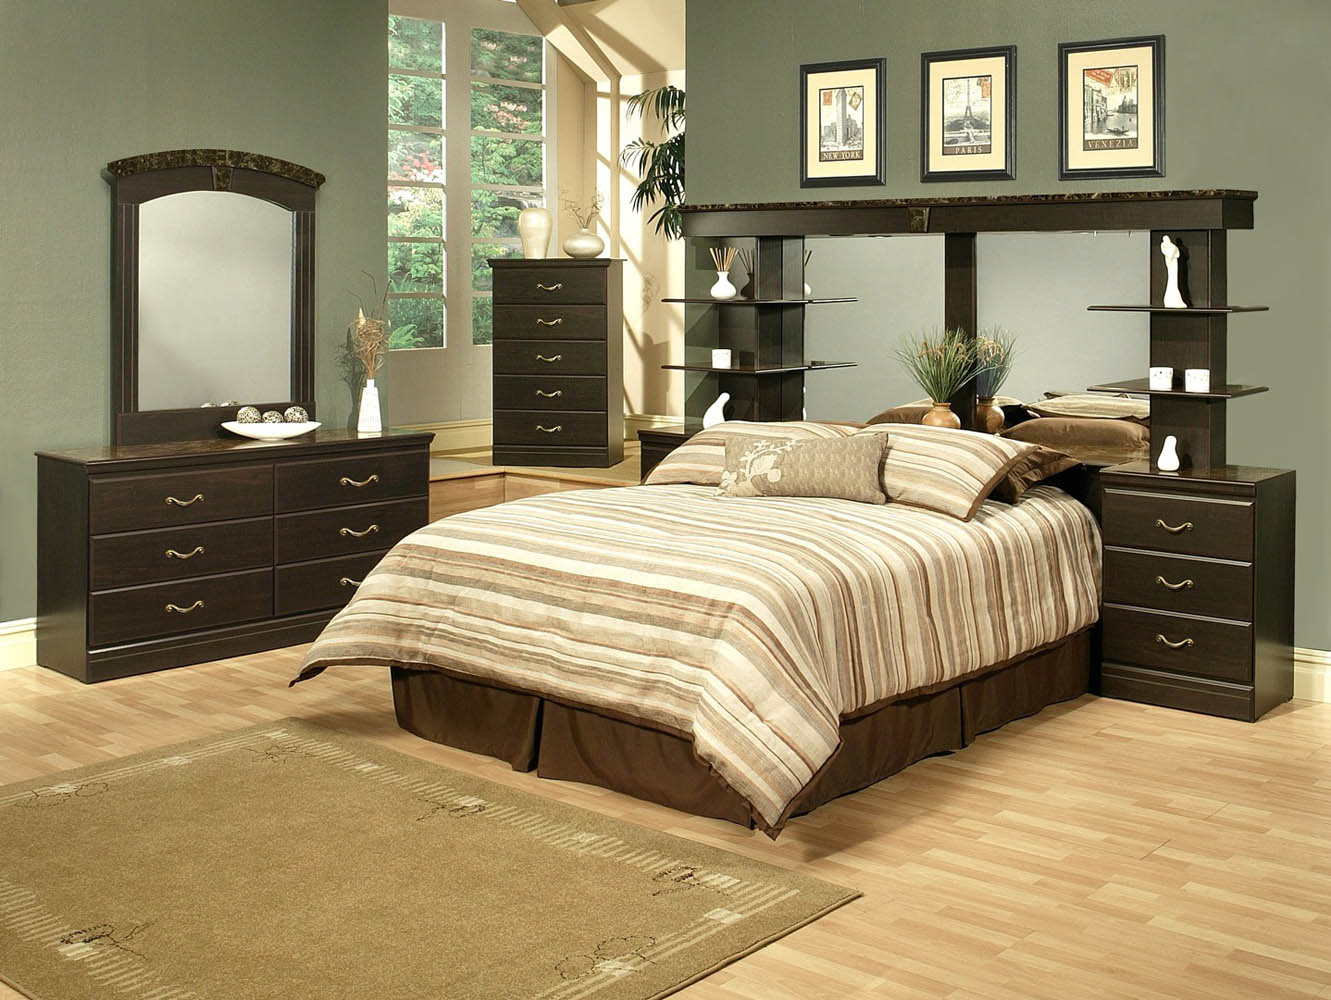 Easy2GetFurniture.com